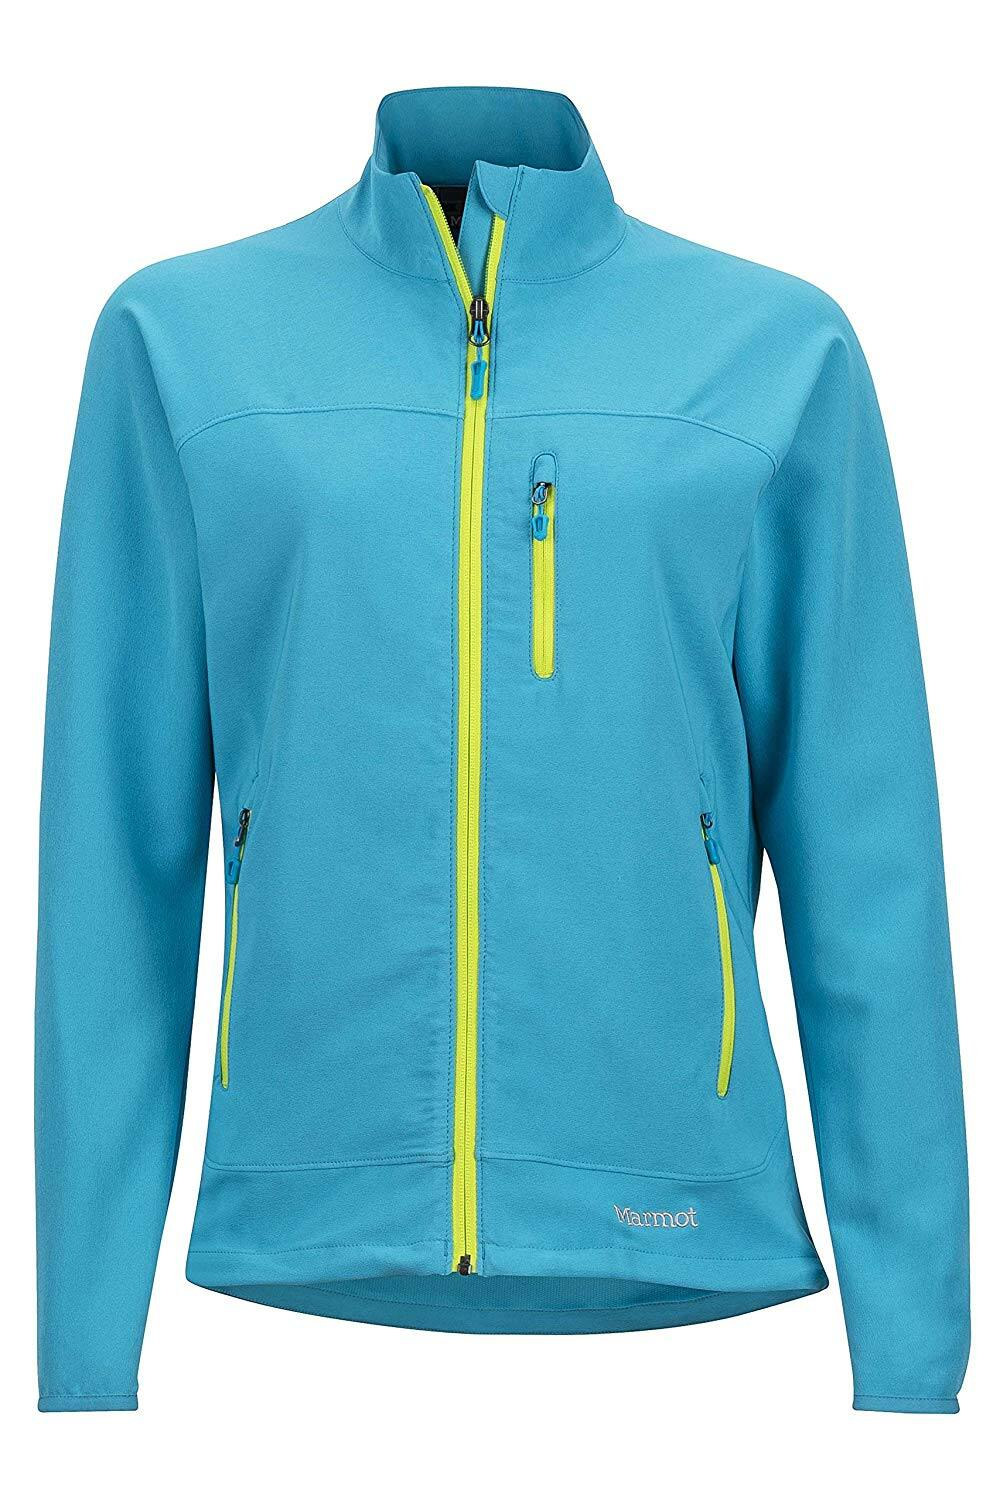 Save up to 30% on Marmot Apparel and Equipment